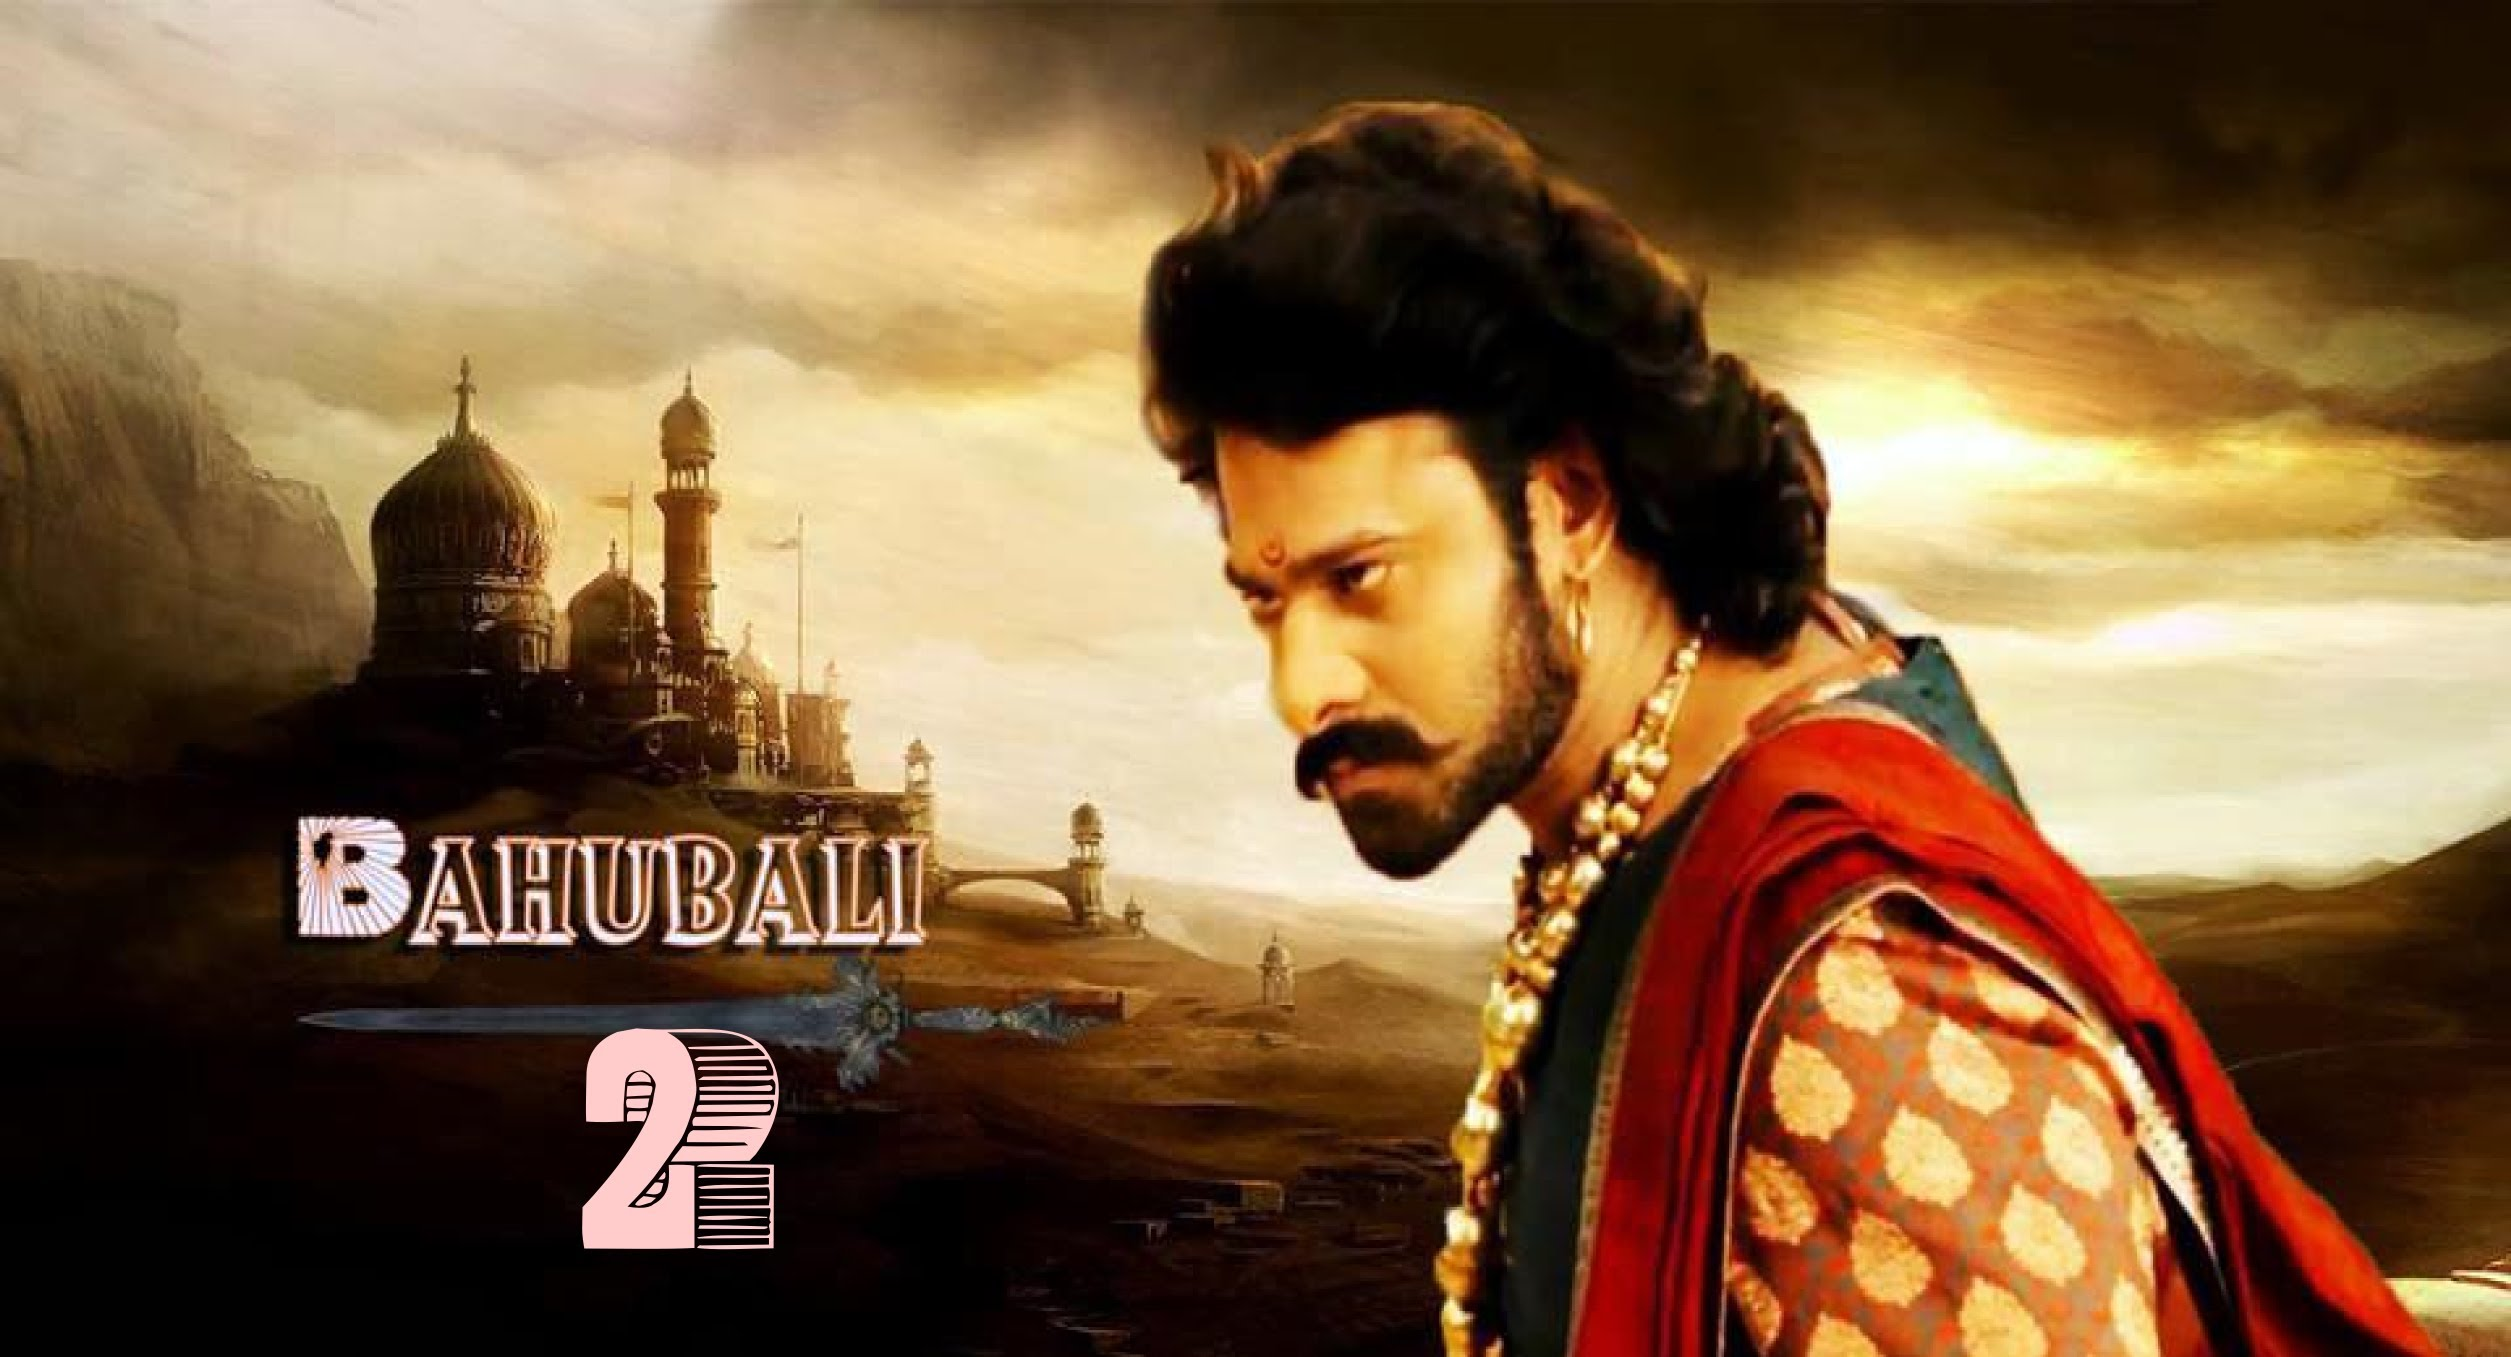 Bahubali 2 Movie Trailer free download